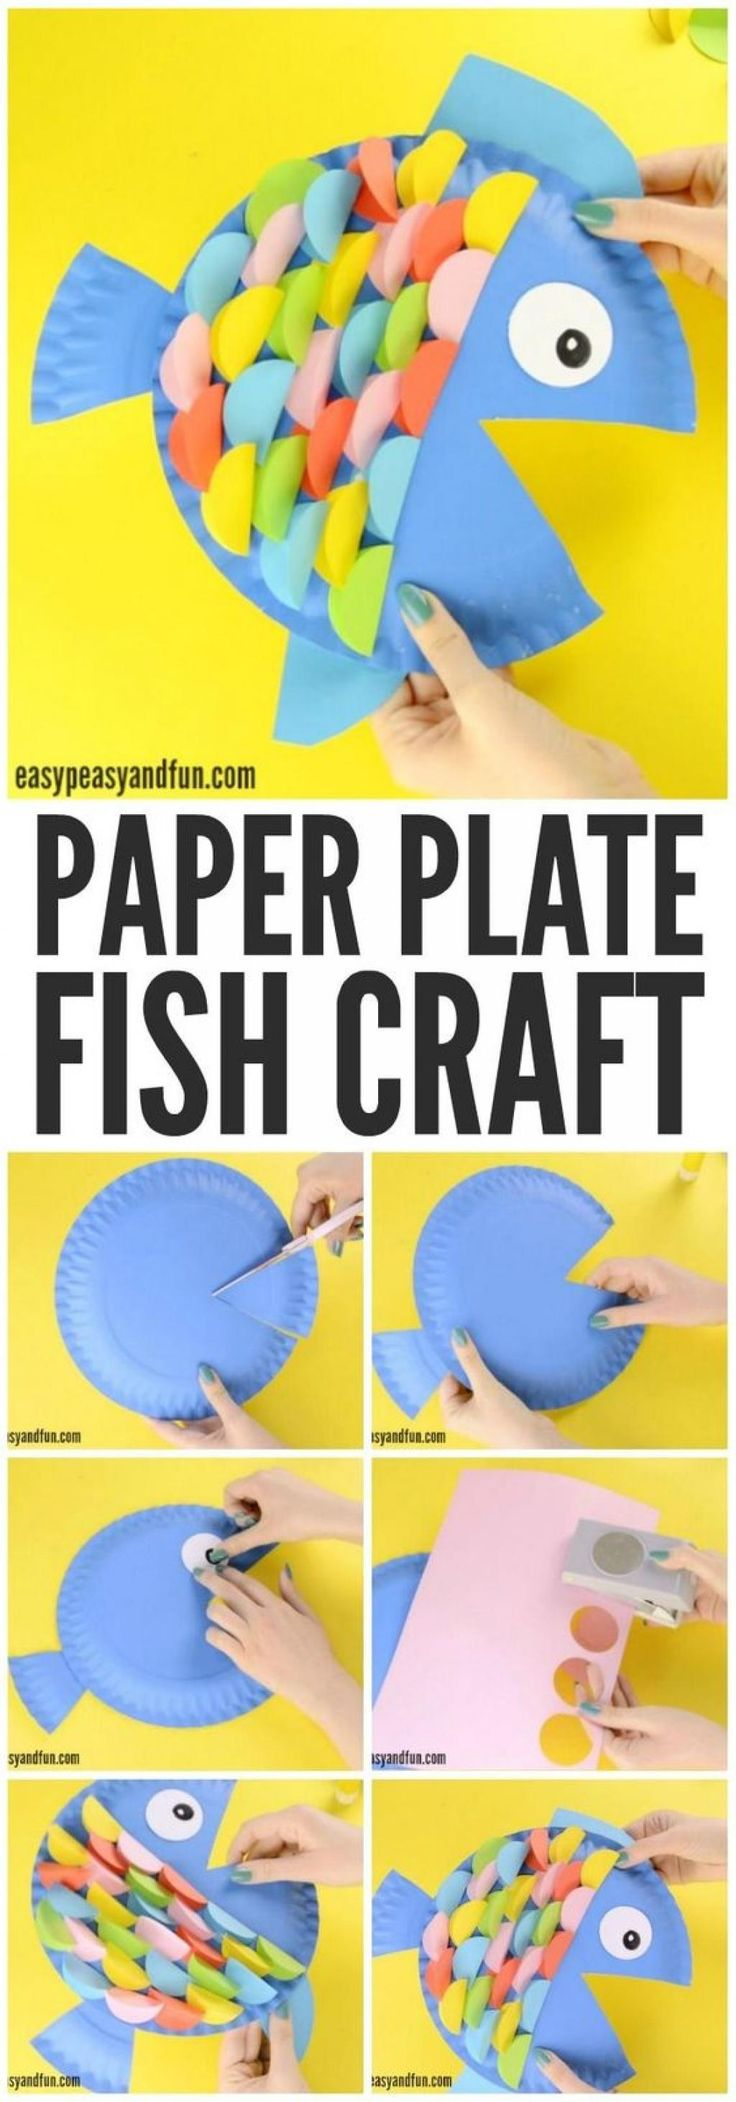 10 beautiful crafts to do with children, to finally celebrate the arrival of spring!